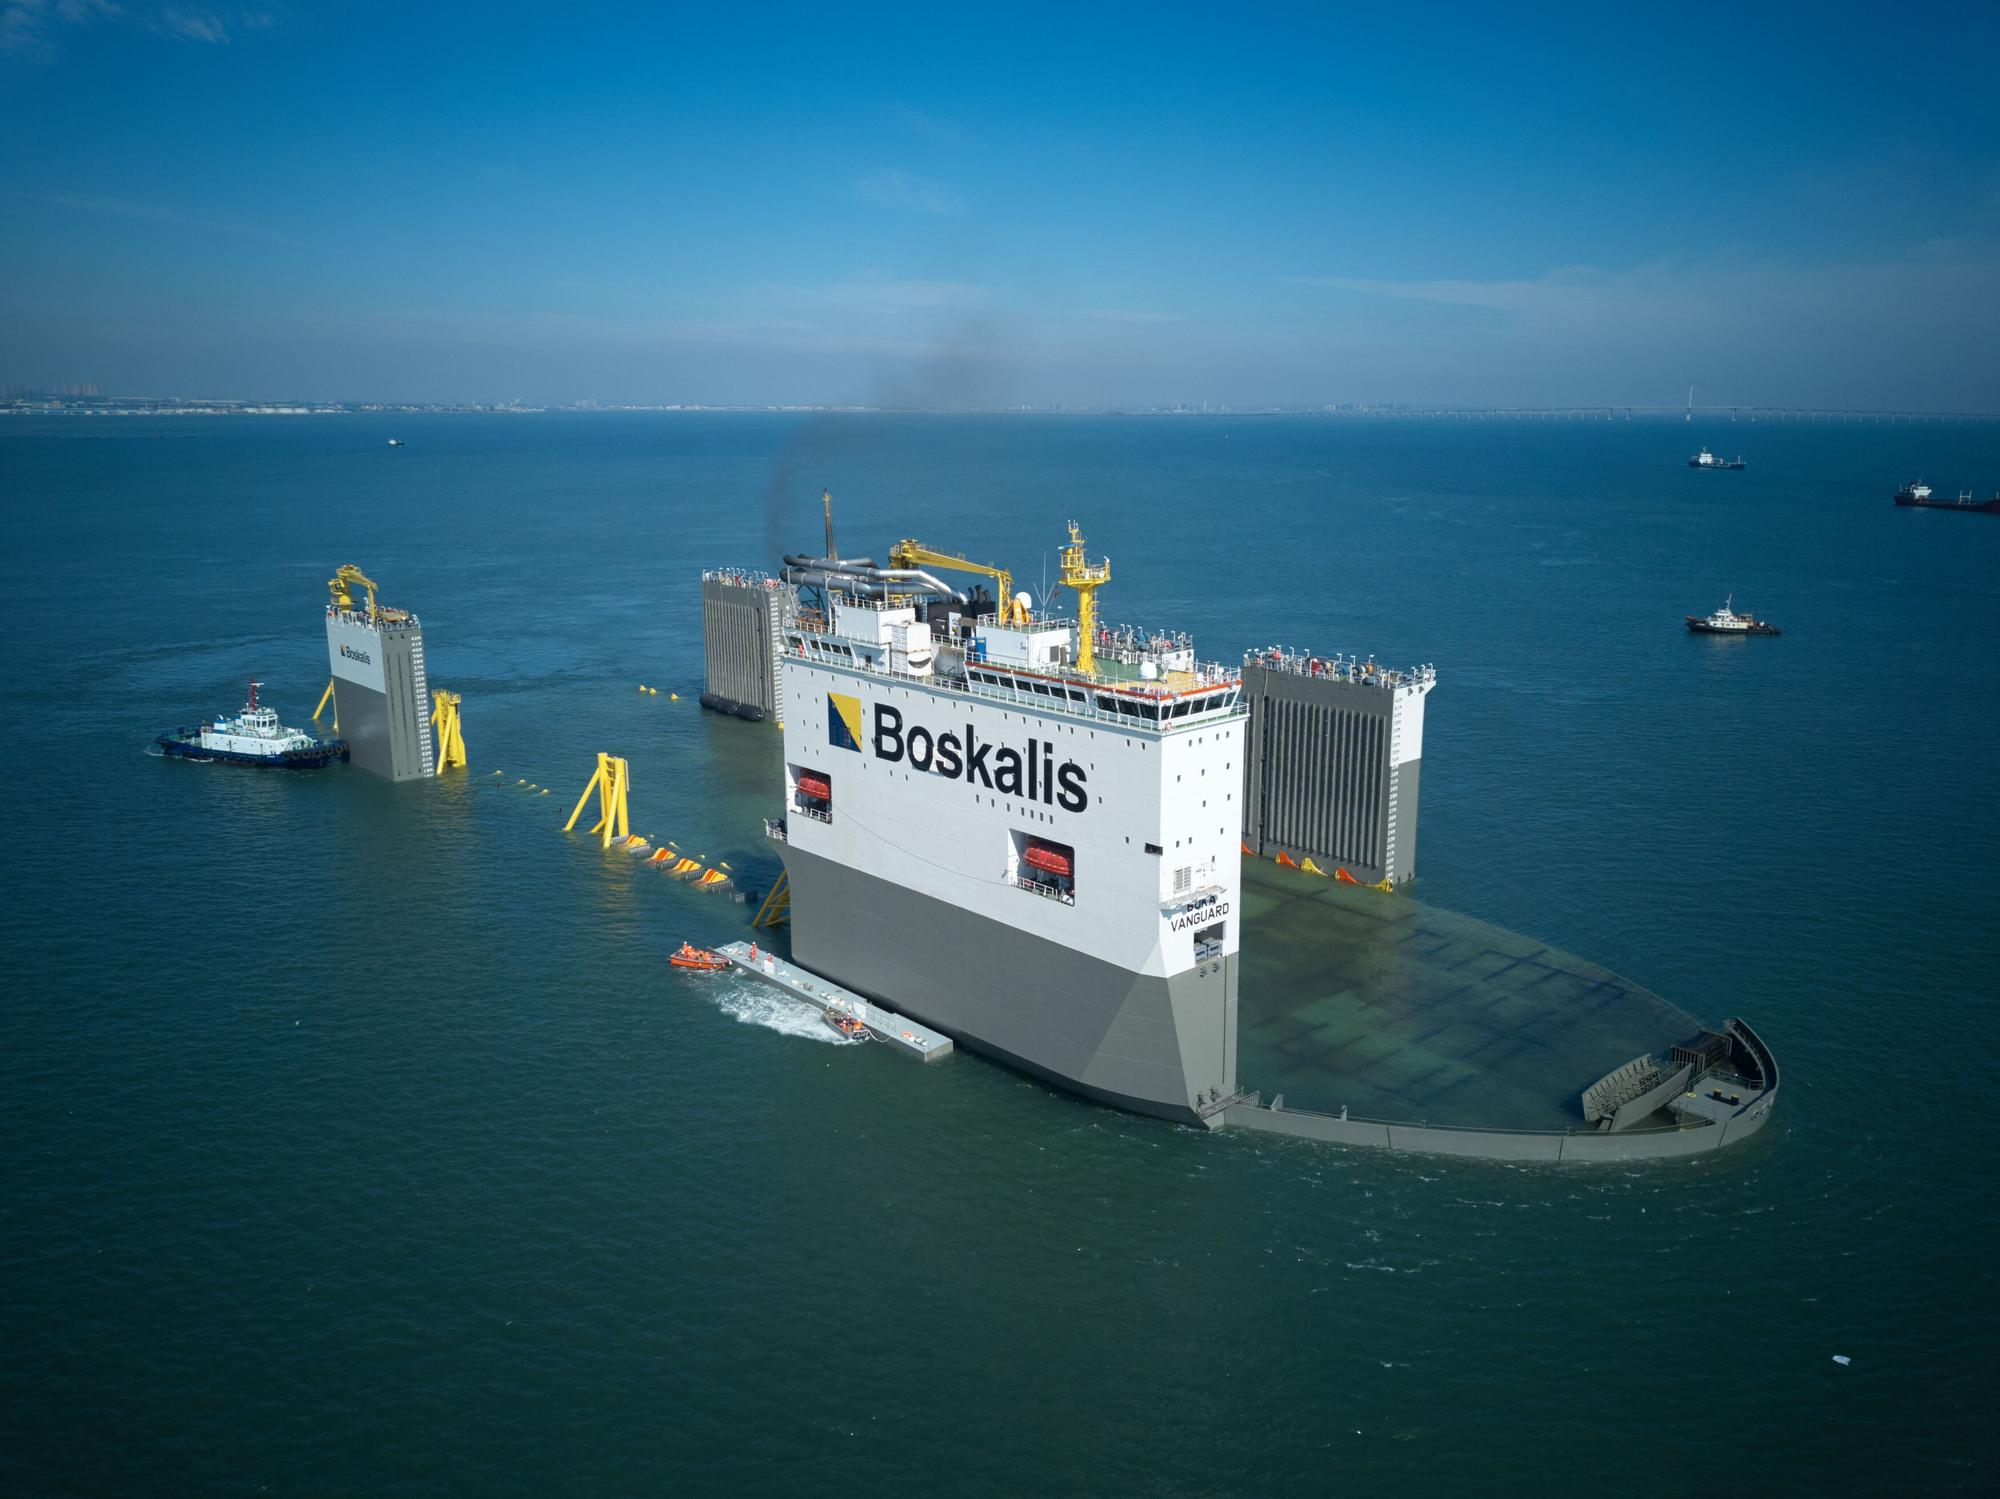 Boskalis_Offshore_Energy_Heavy_Marine_Transport_-_BOKA_VanGuard.jpg